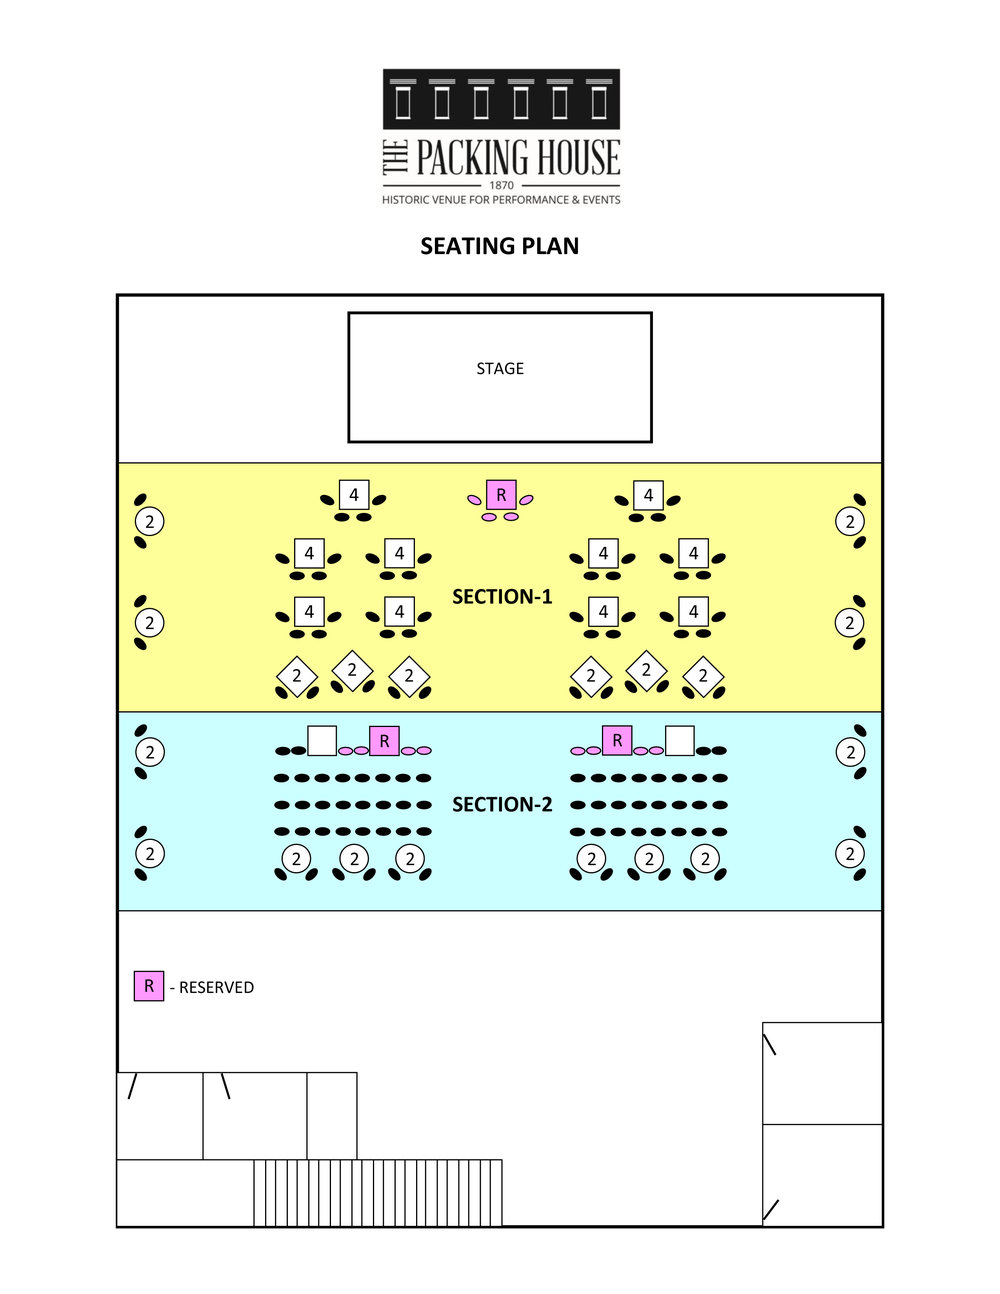 TPH Seating Plan.jpg